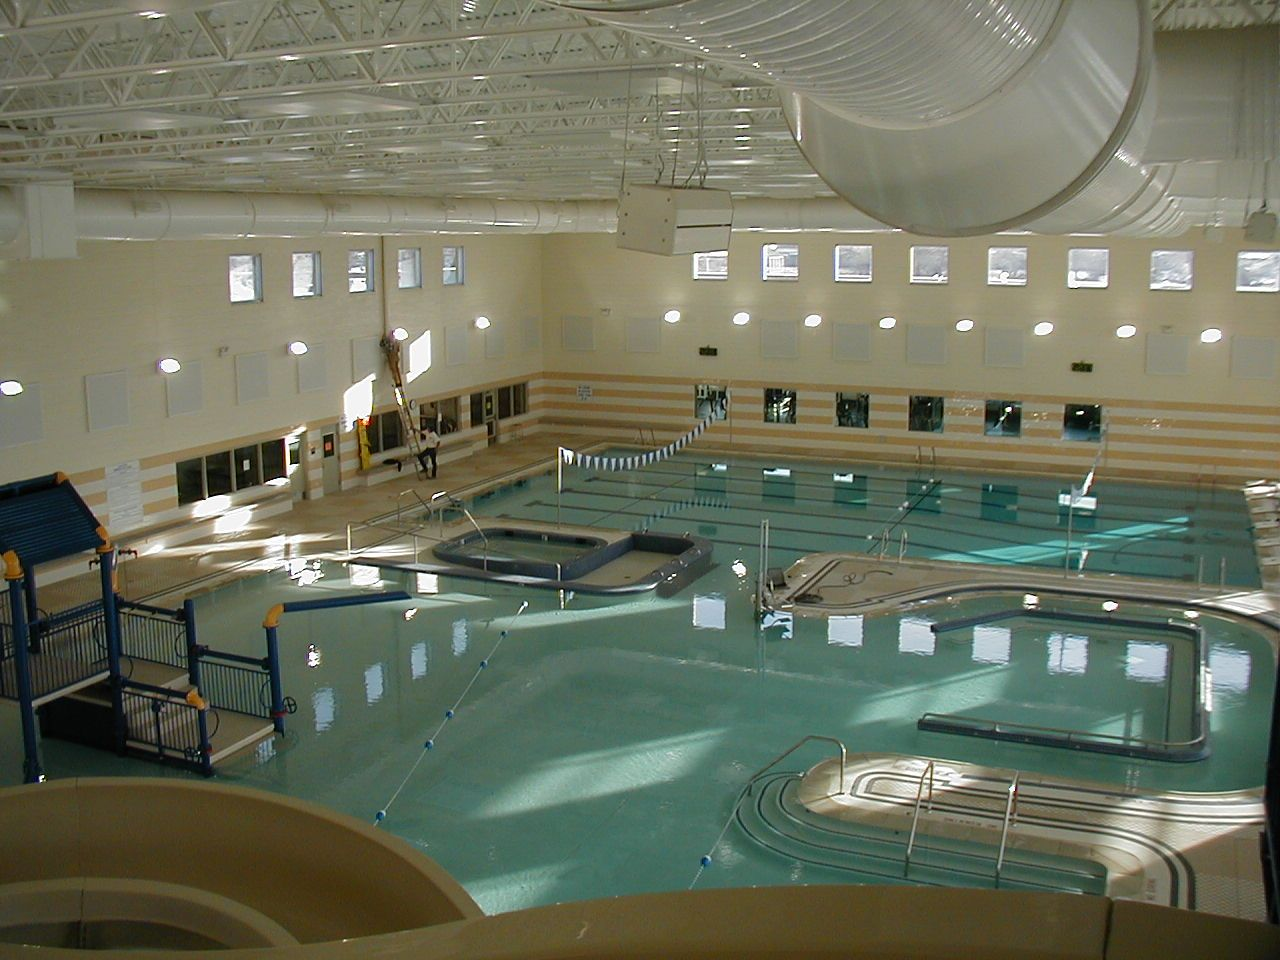 Lions center swimming pool good times swimming pools